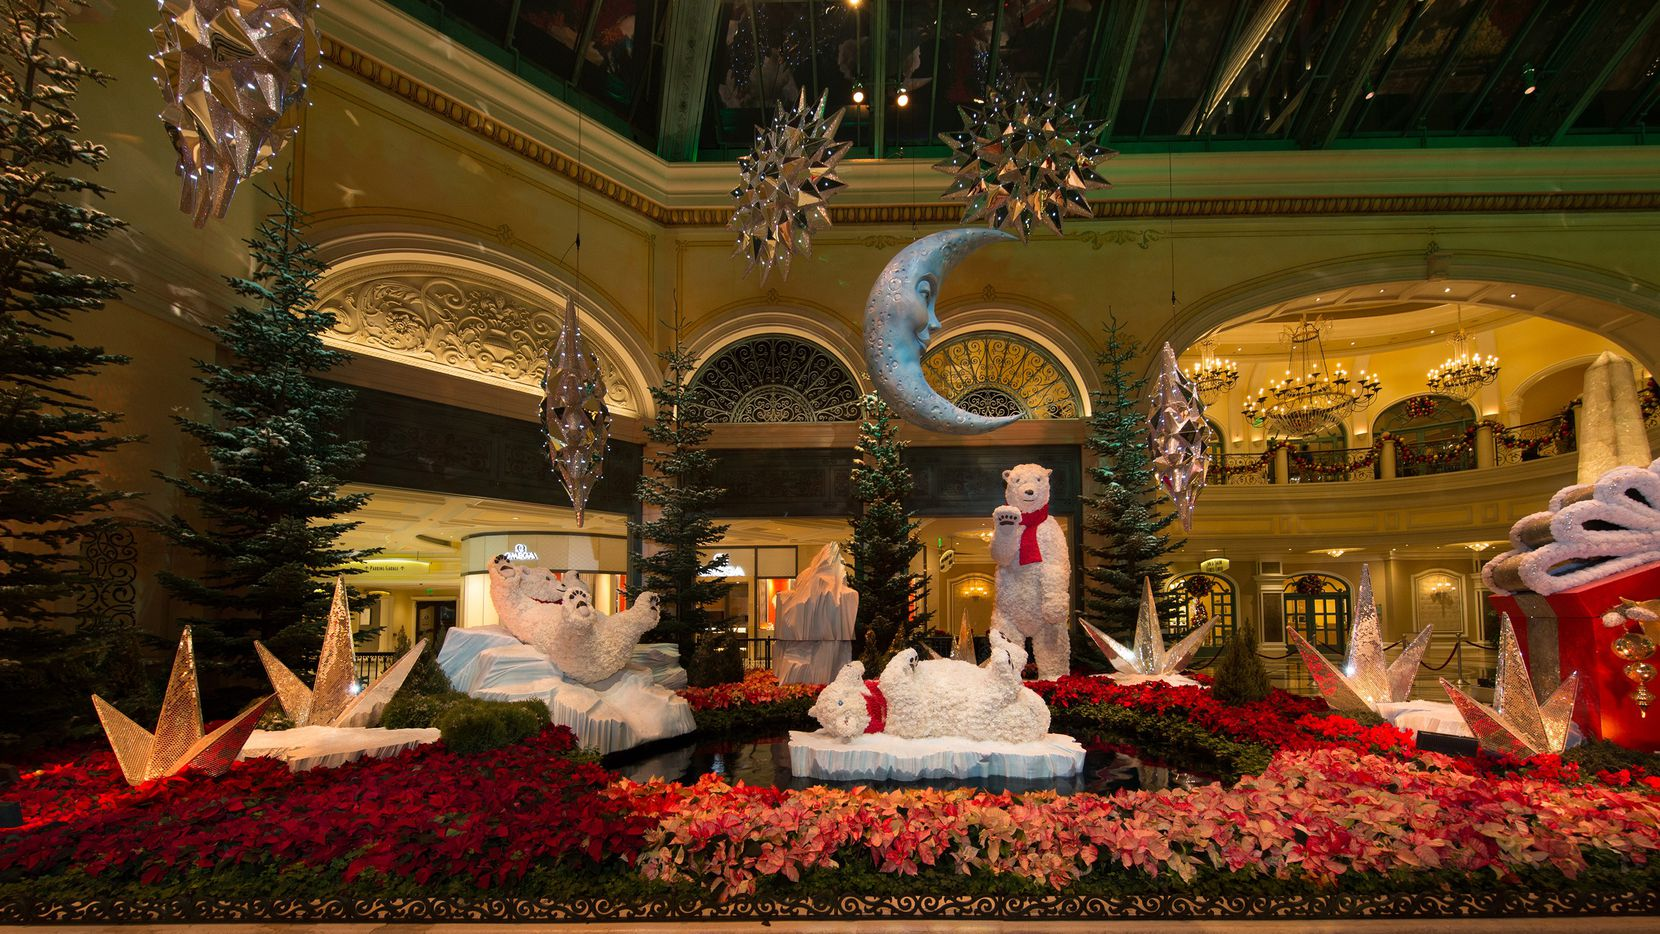 Bellagio in Las Vegas goes all out for the holidays, as in this 2018 display.